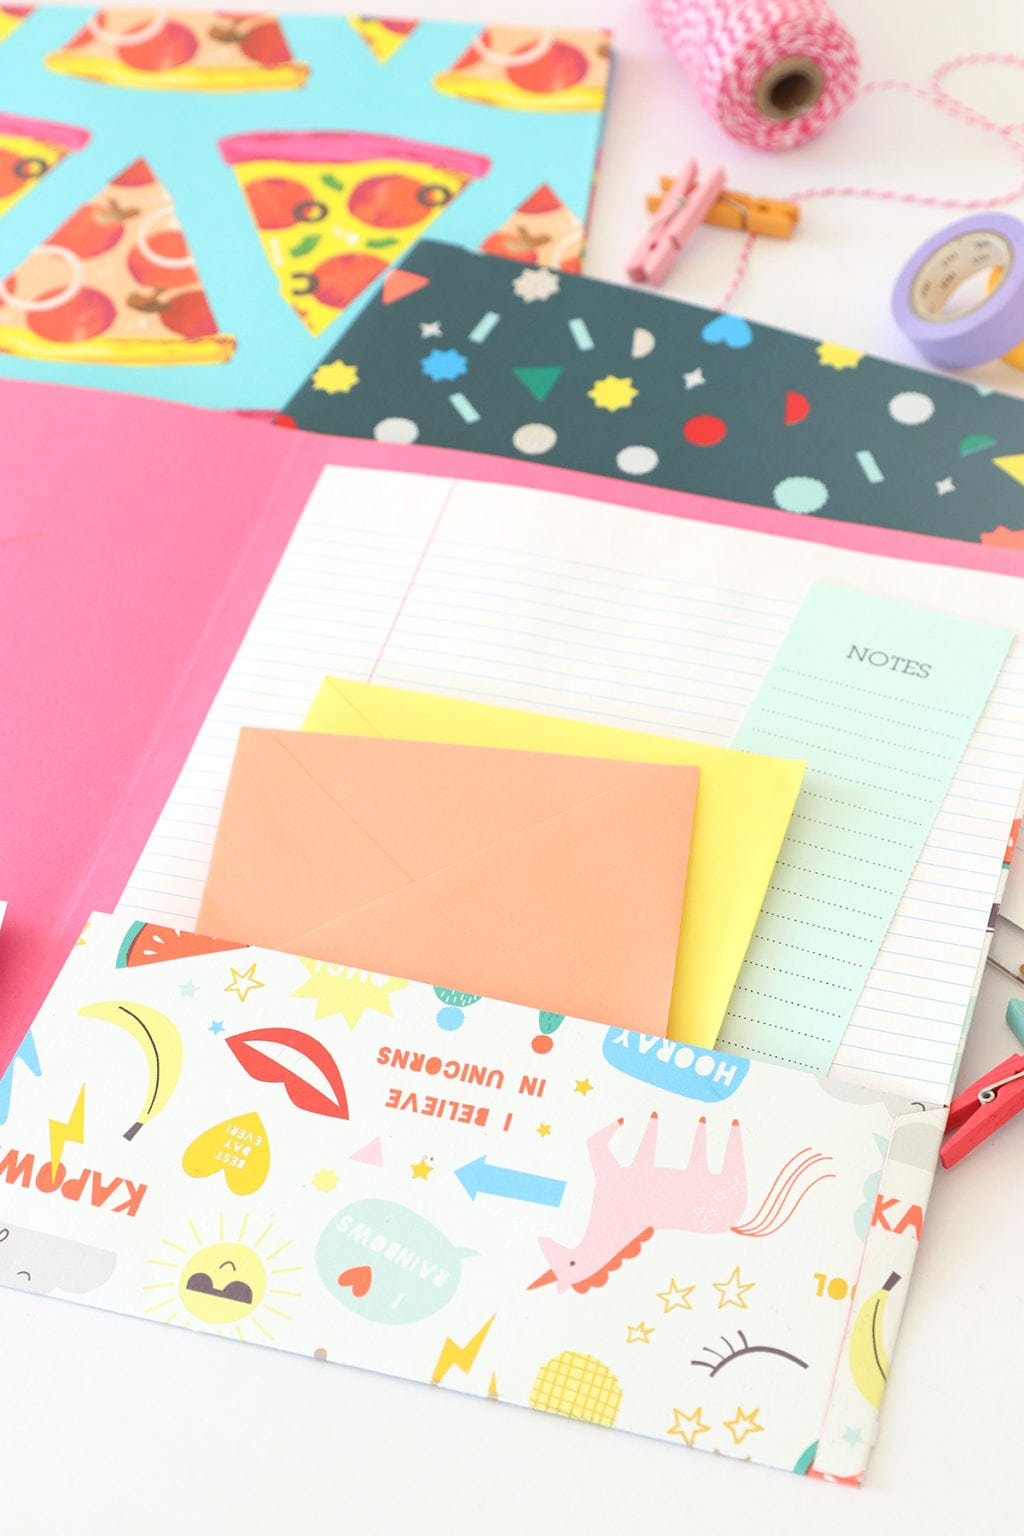 Perfect for students, planners or anyone who wants to get organized!